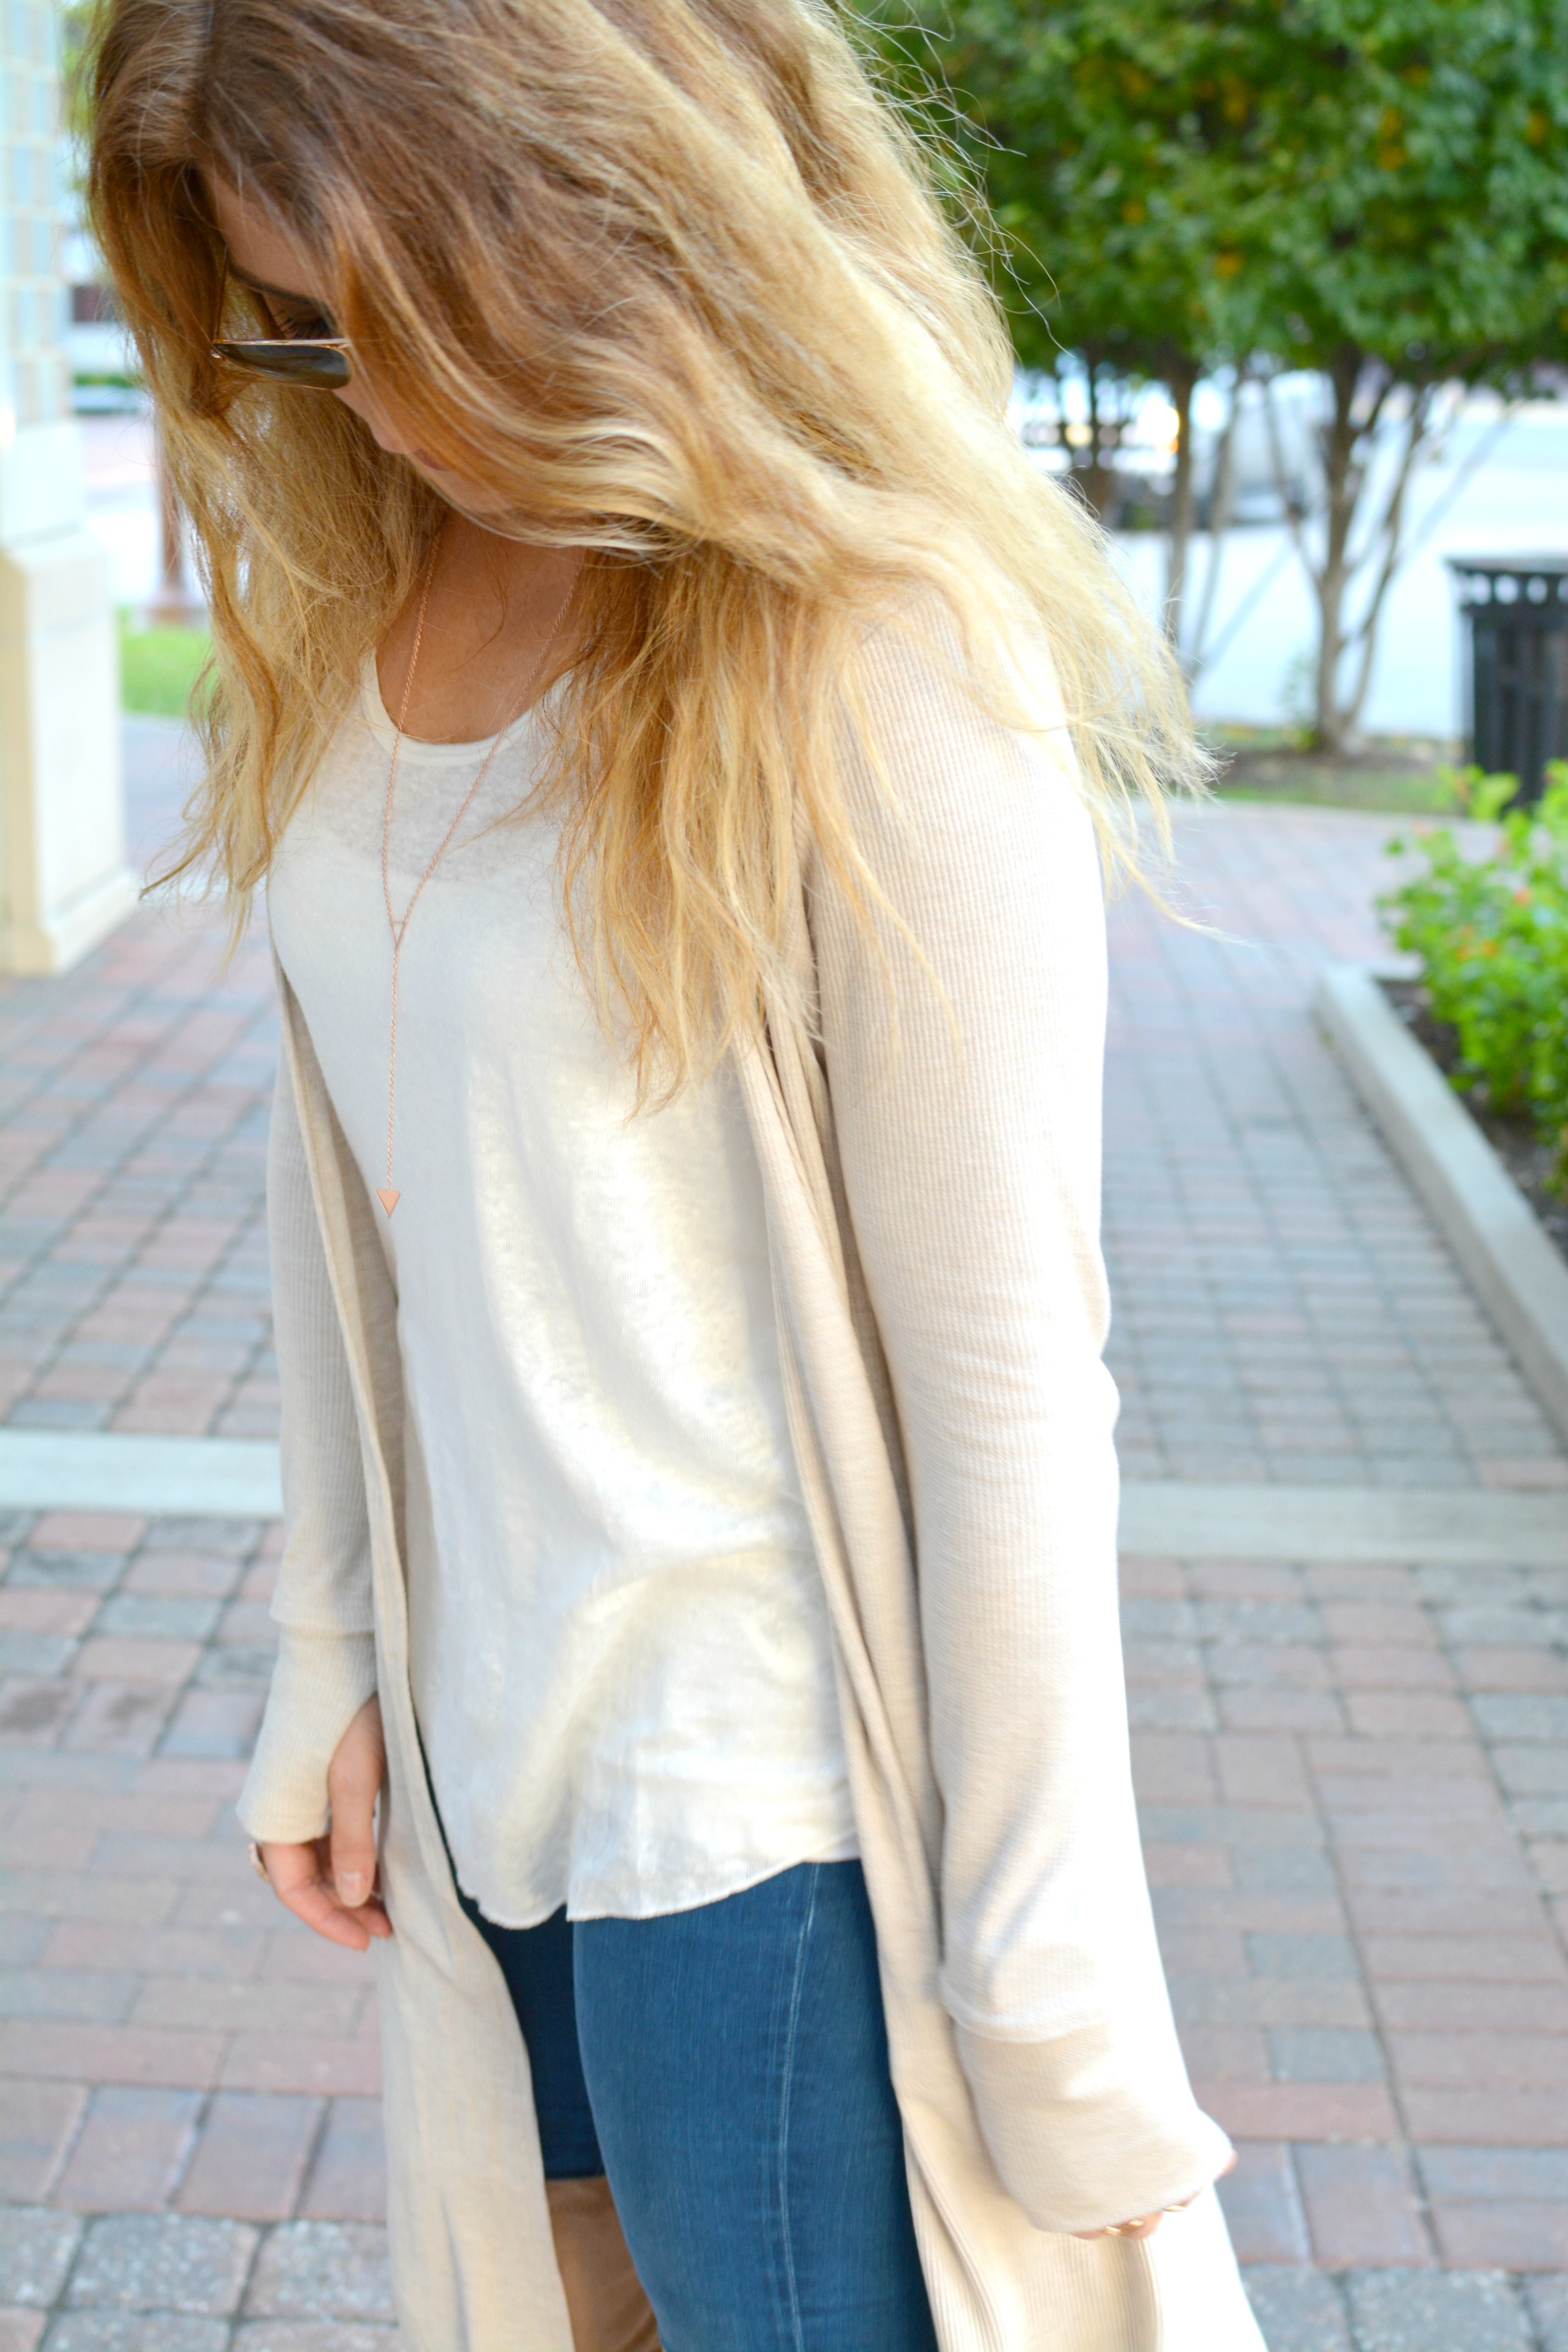 Ashley from LSR in a beige long cardigan and rose gold Gorjana necklace